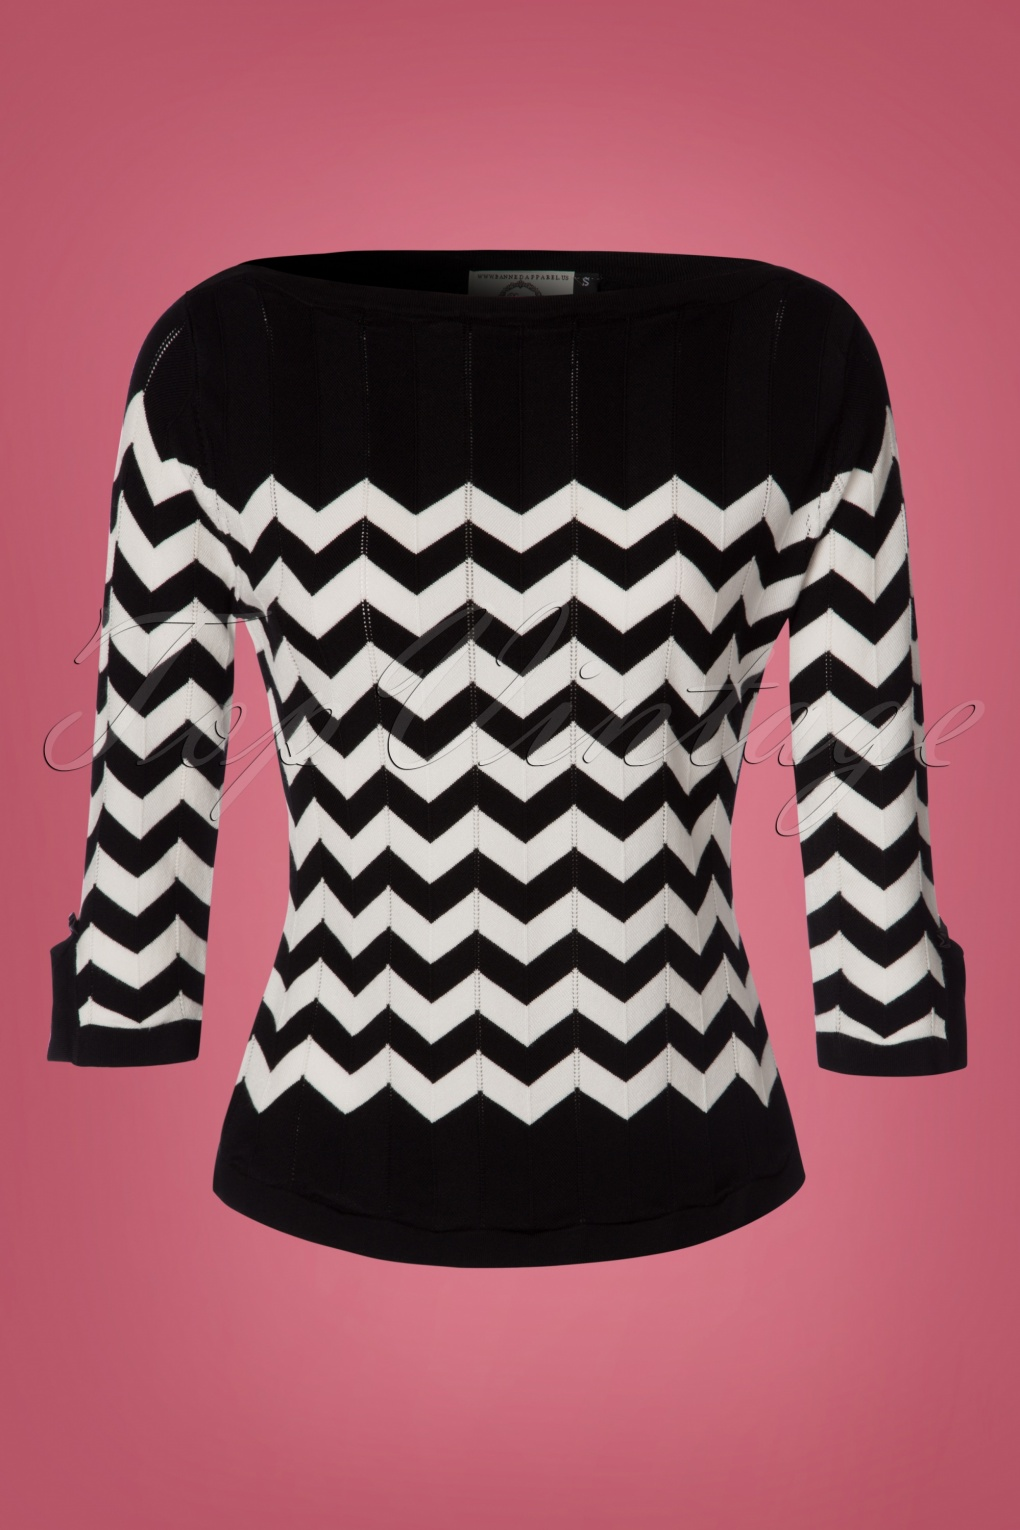 Retro Vintage Sweaters 60s Vanilla Top in Black and White £37.90 AT vintagedancer.com